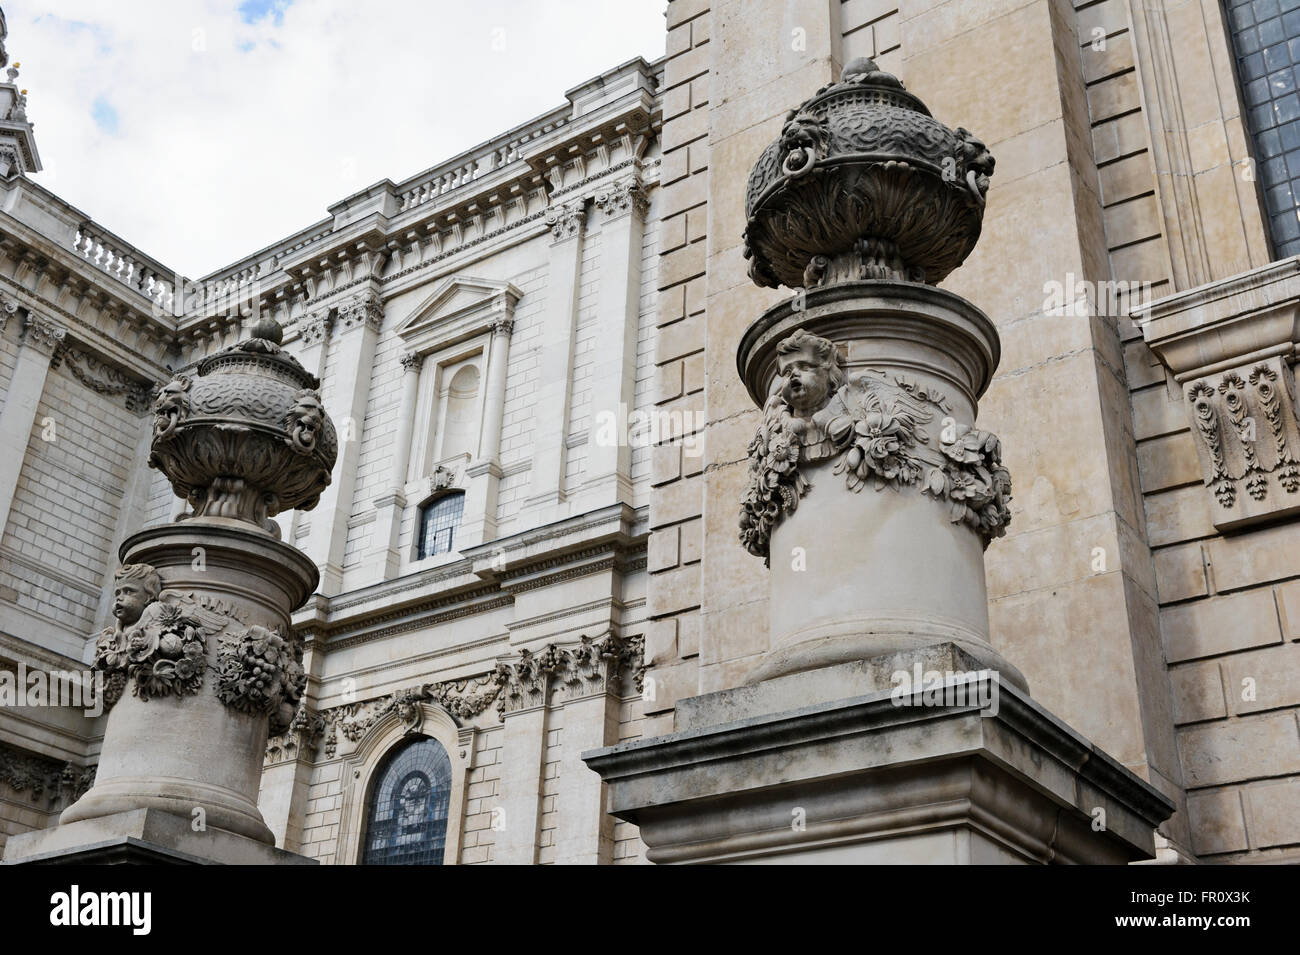 Stone carvings on pillars outside St Paul's Cathedral in London, United Kingdom. - Stock Image